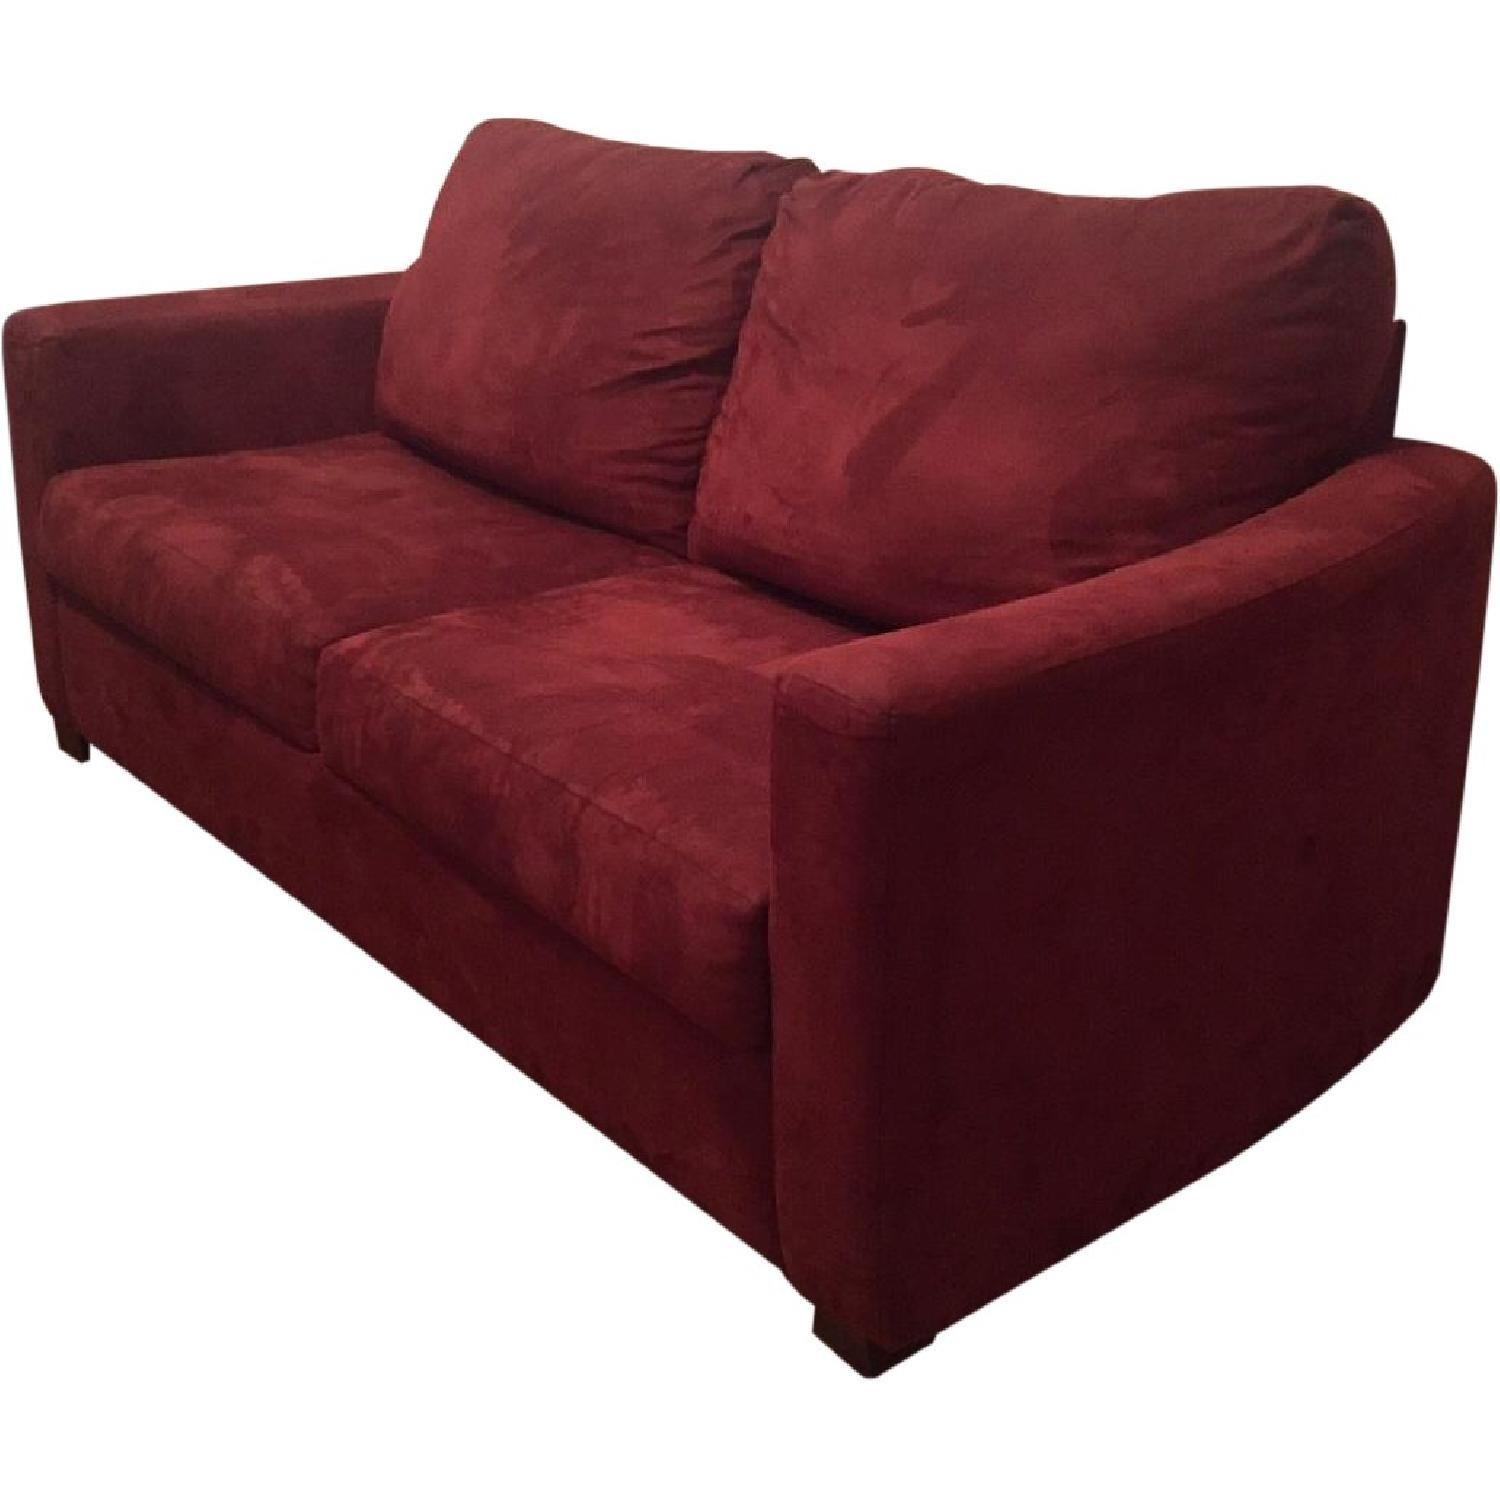 loveseat tufted size out convertible fold full sleeper sofa bed leather couch of sofas